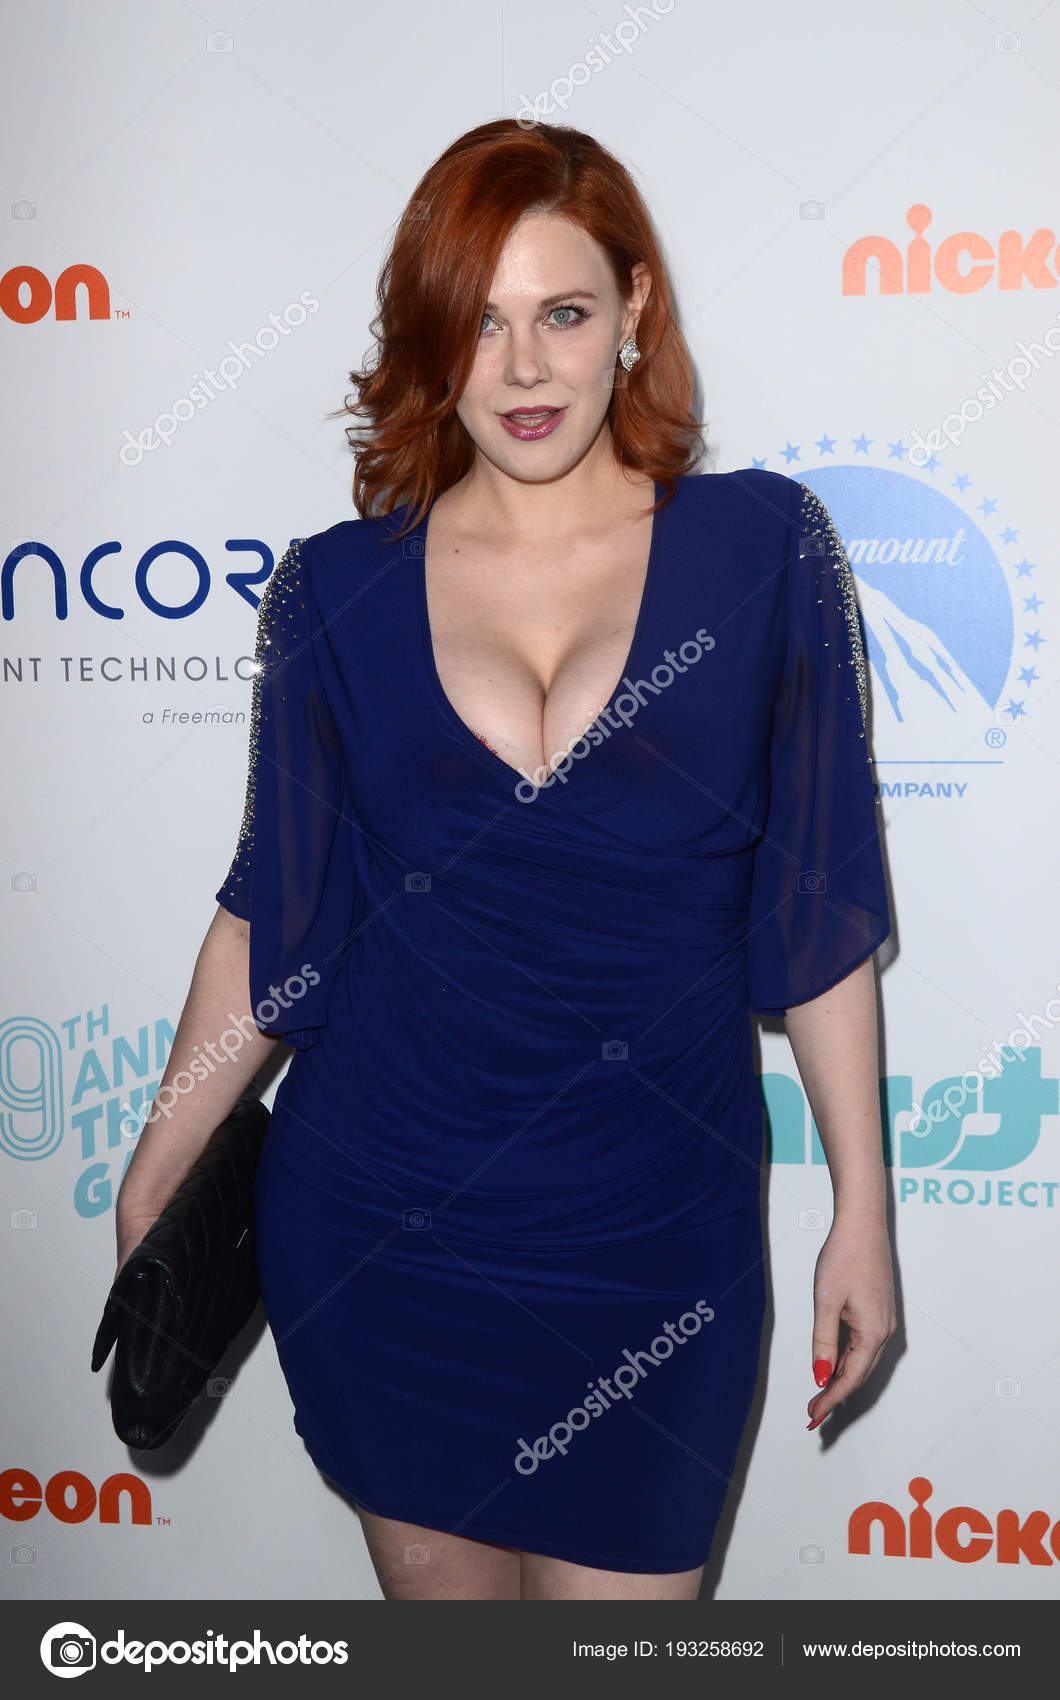 Pictures Maitland Ward nudes (82 foto and video), Ass, Hot, Boobs, butt 2018